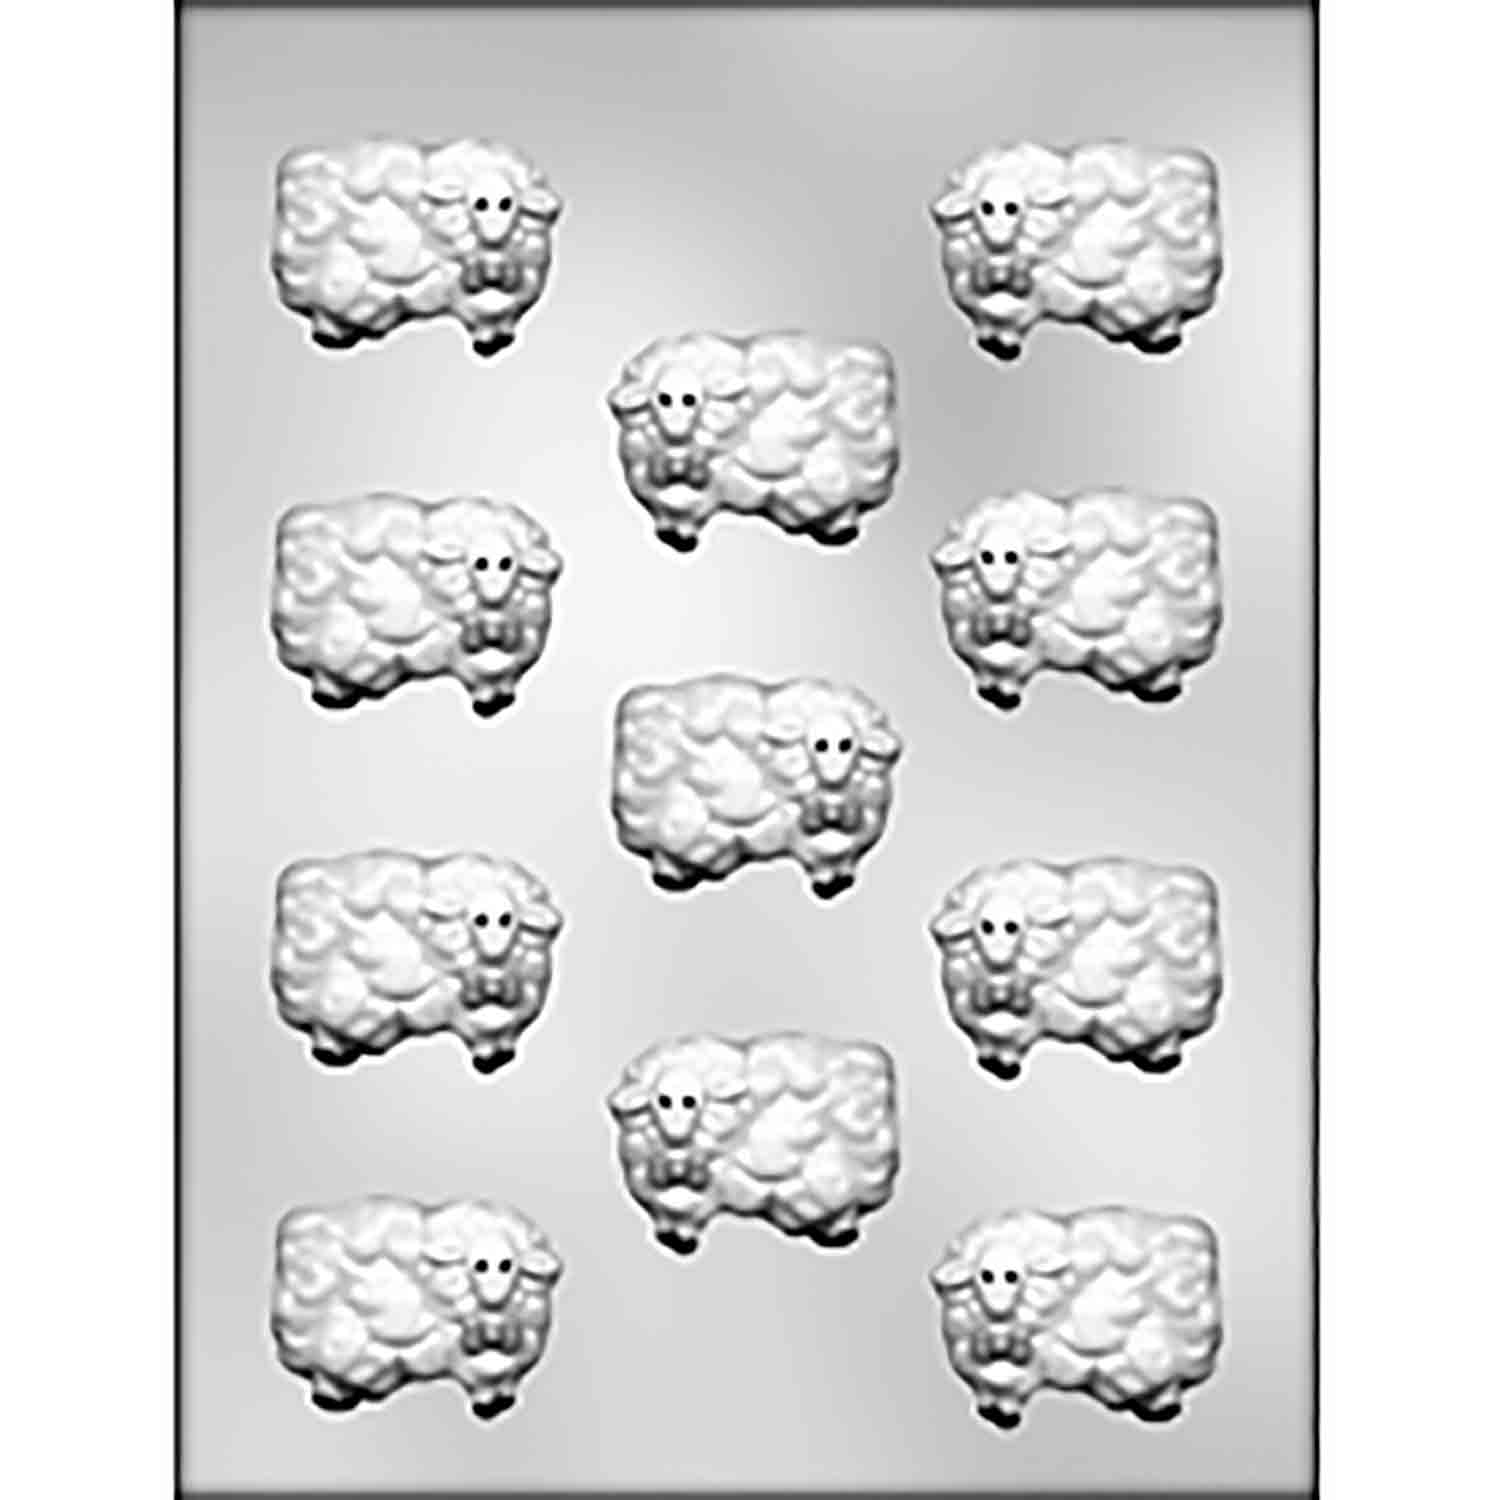 Woolly Sheep Chocolate Candy Mold